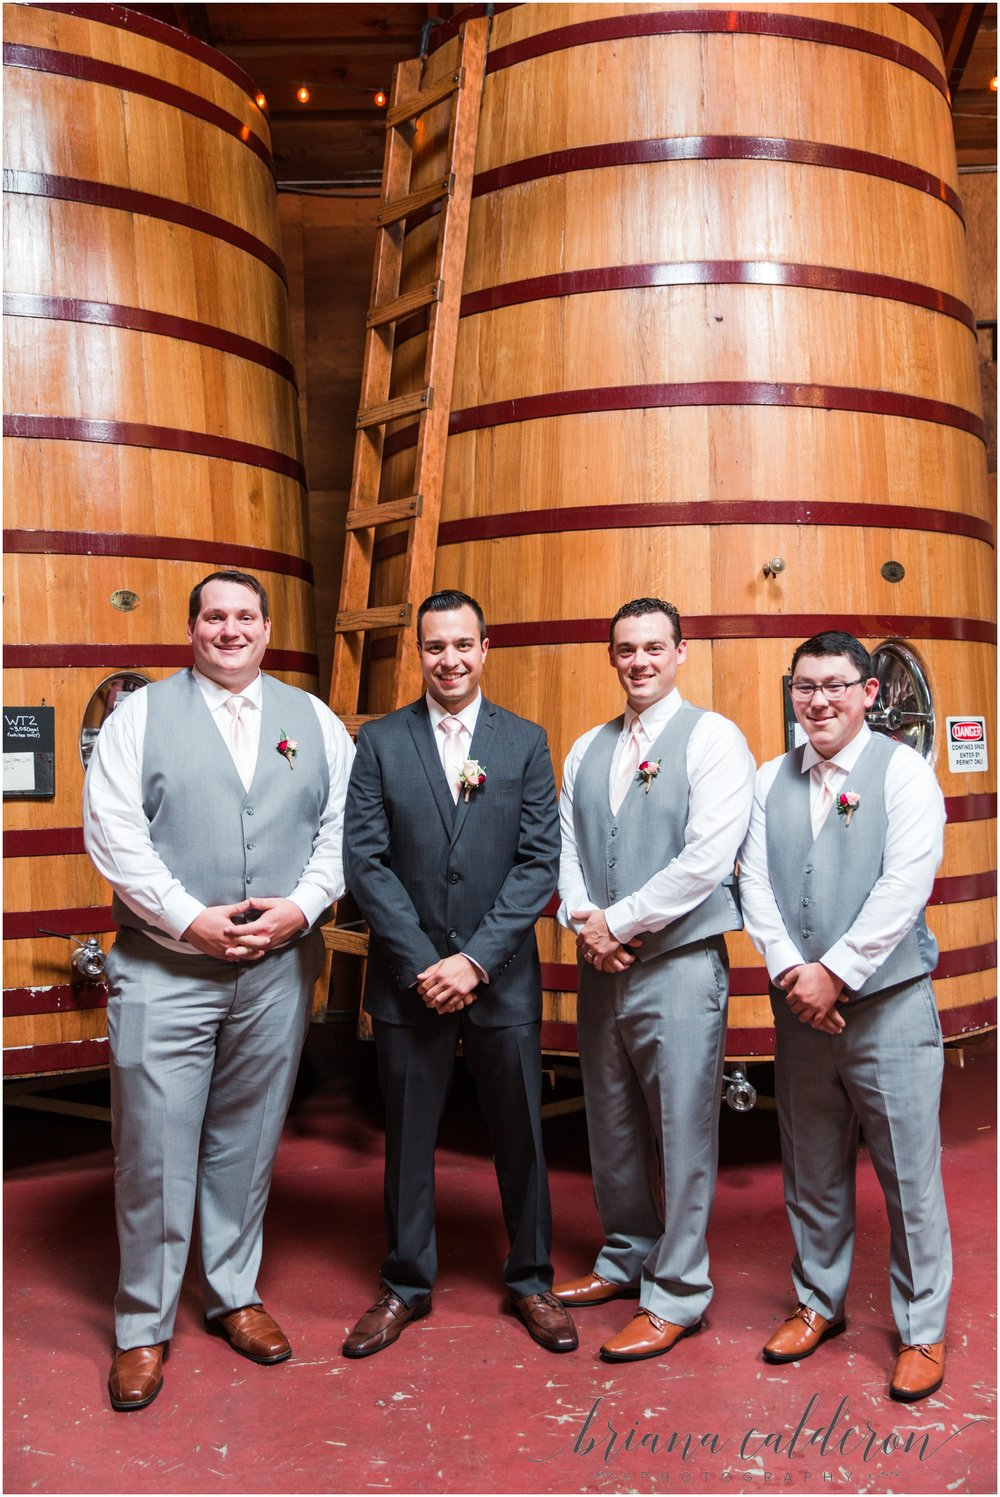 Bargetto Winery Wedding photos by Briana Calderon Photography_0921.jpg